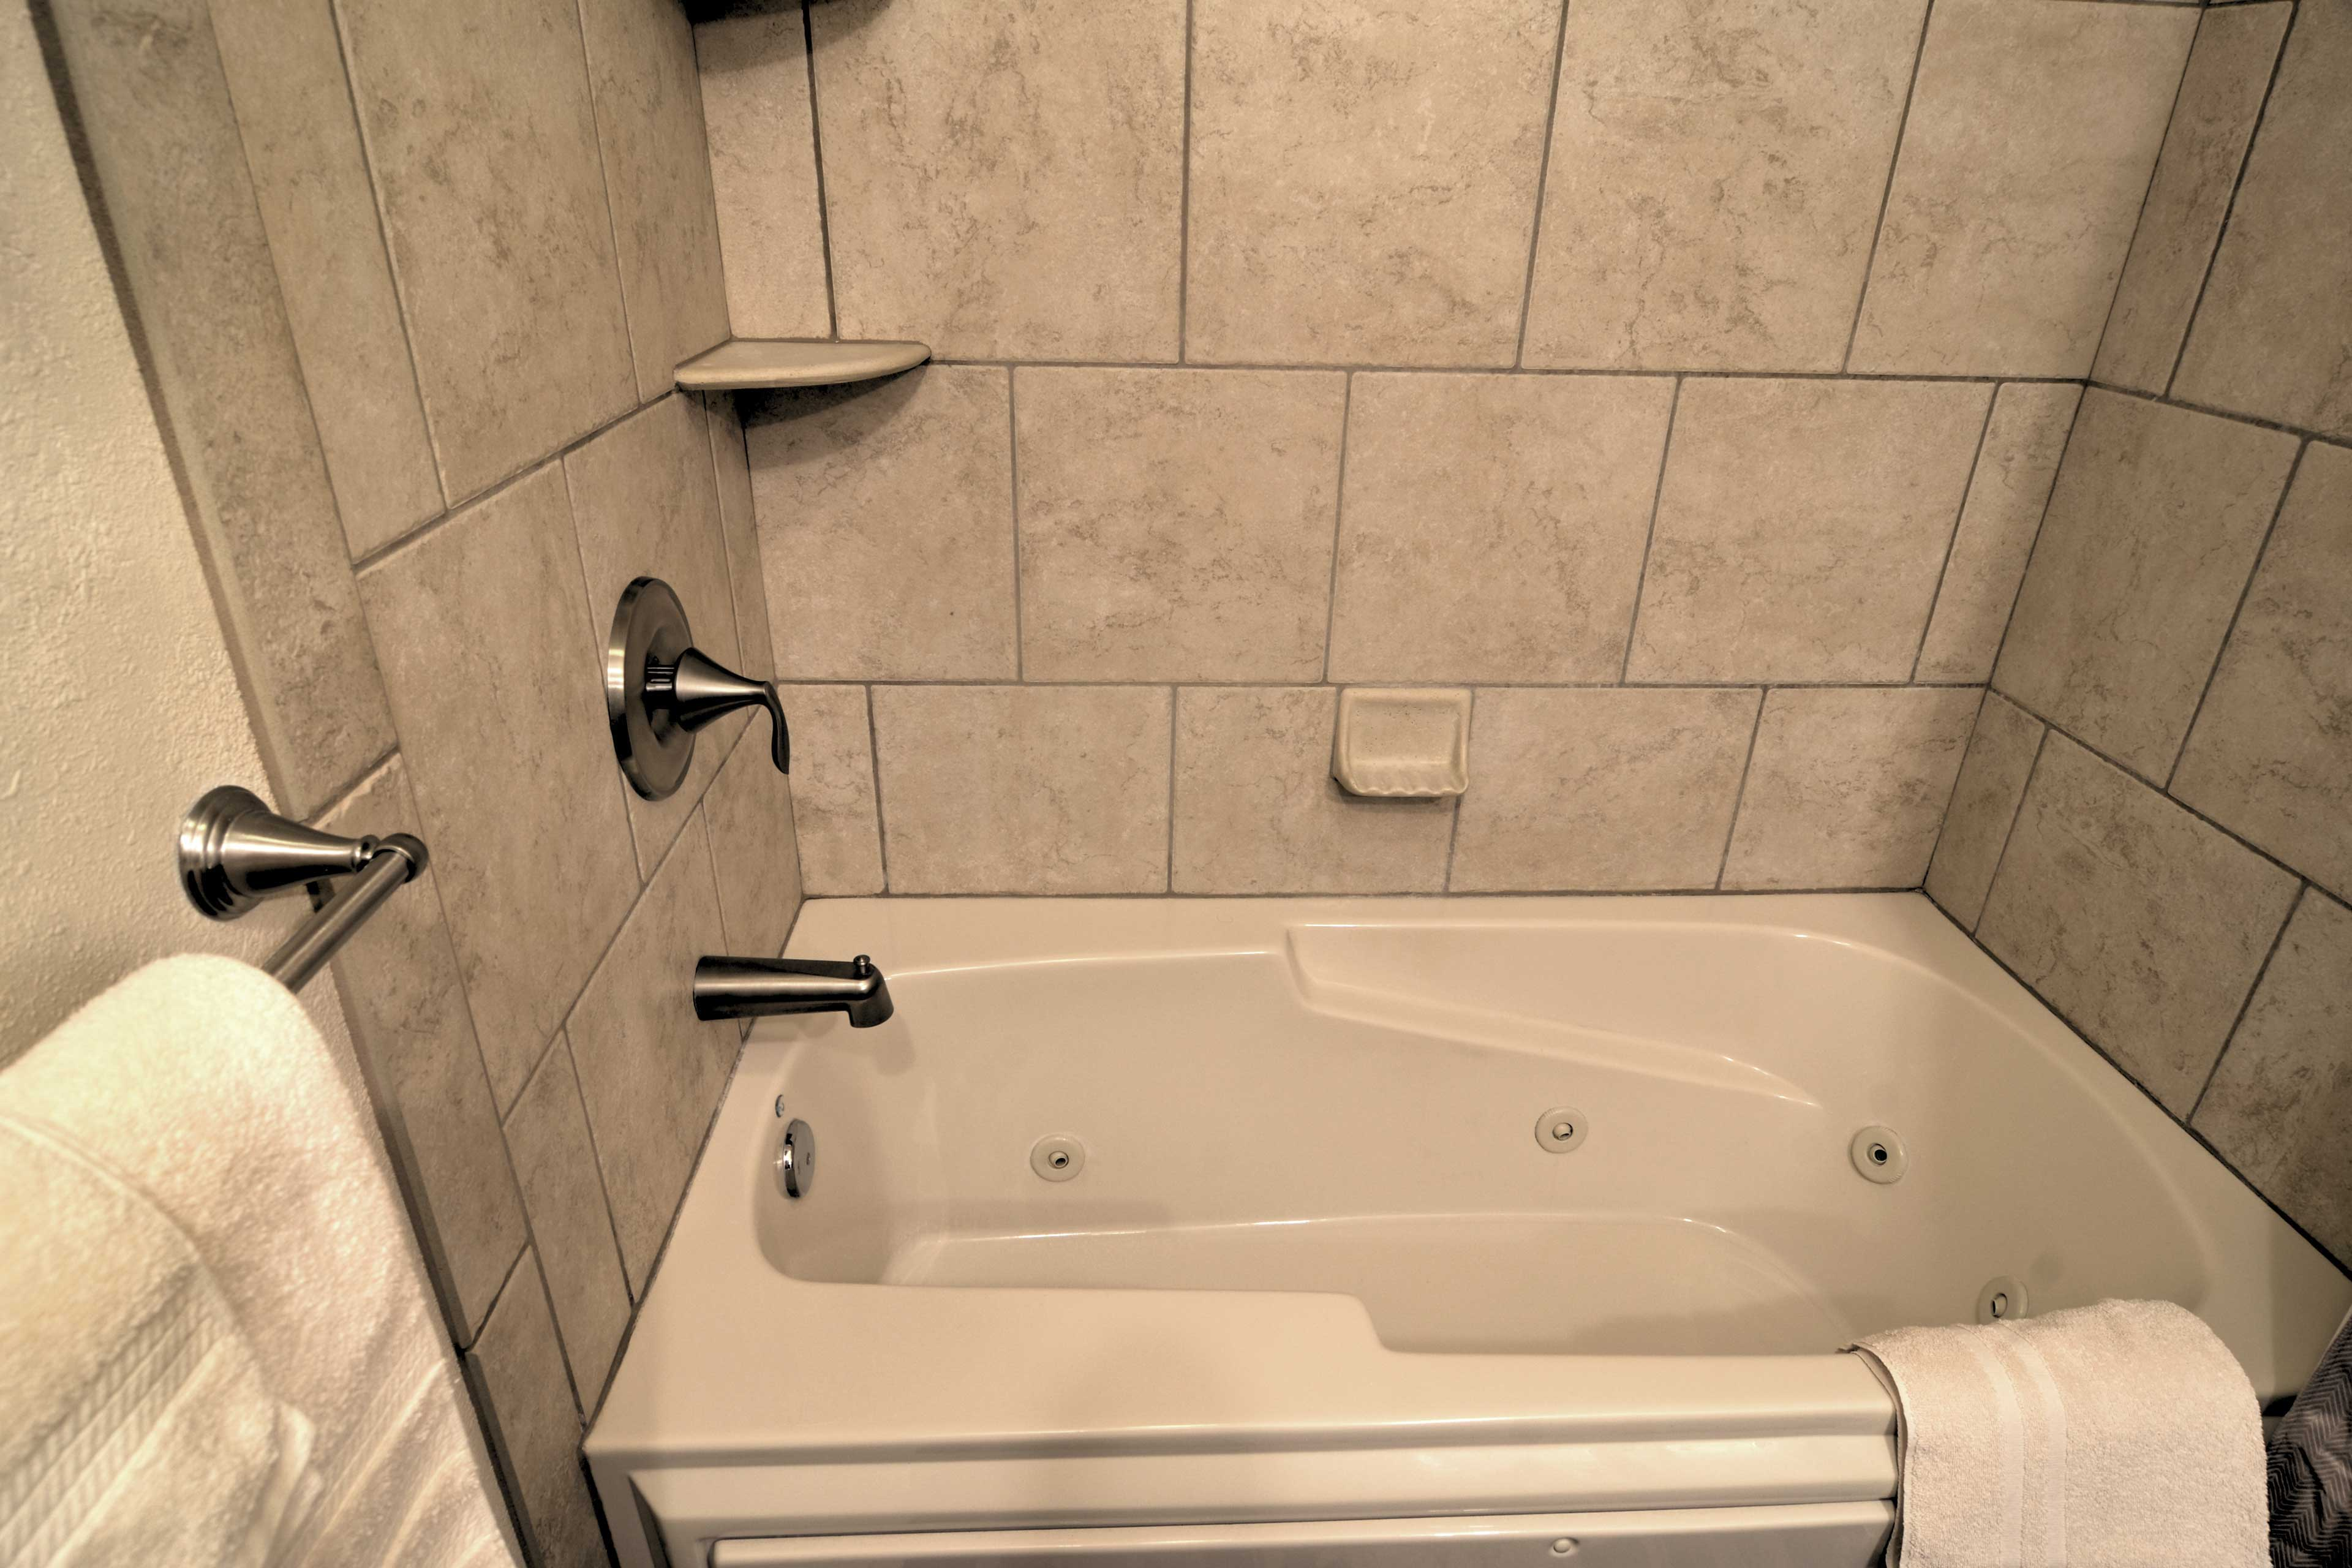 The master bath features a large jacuzzi tub.